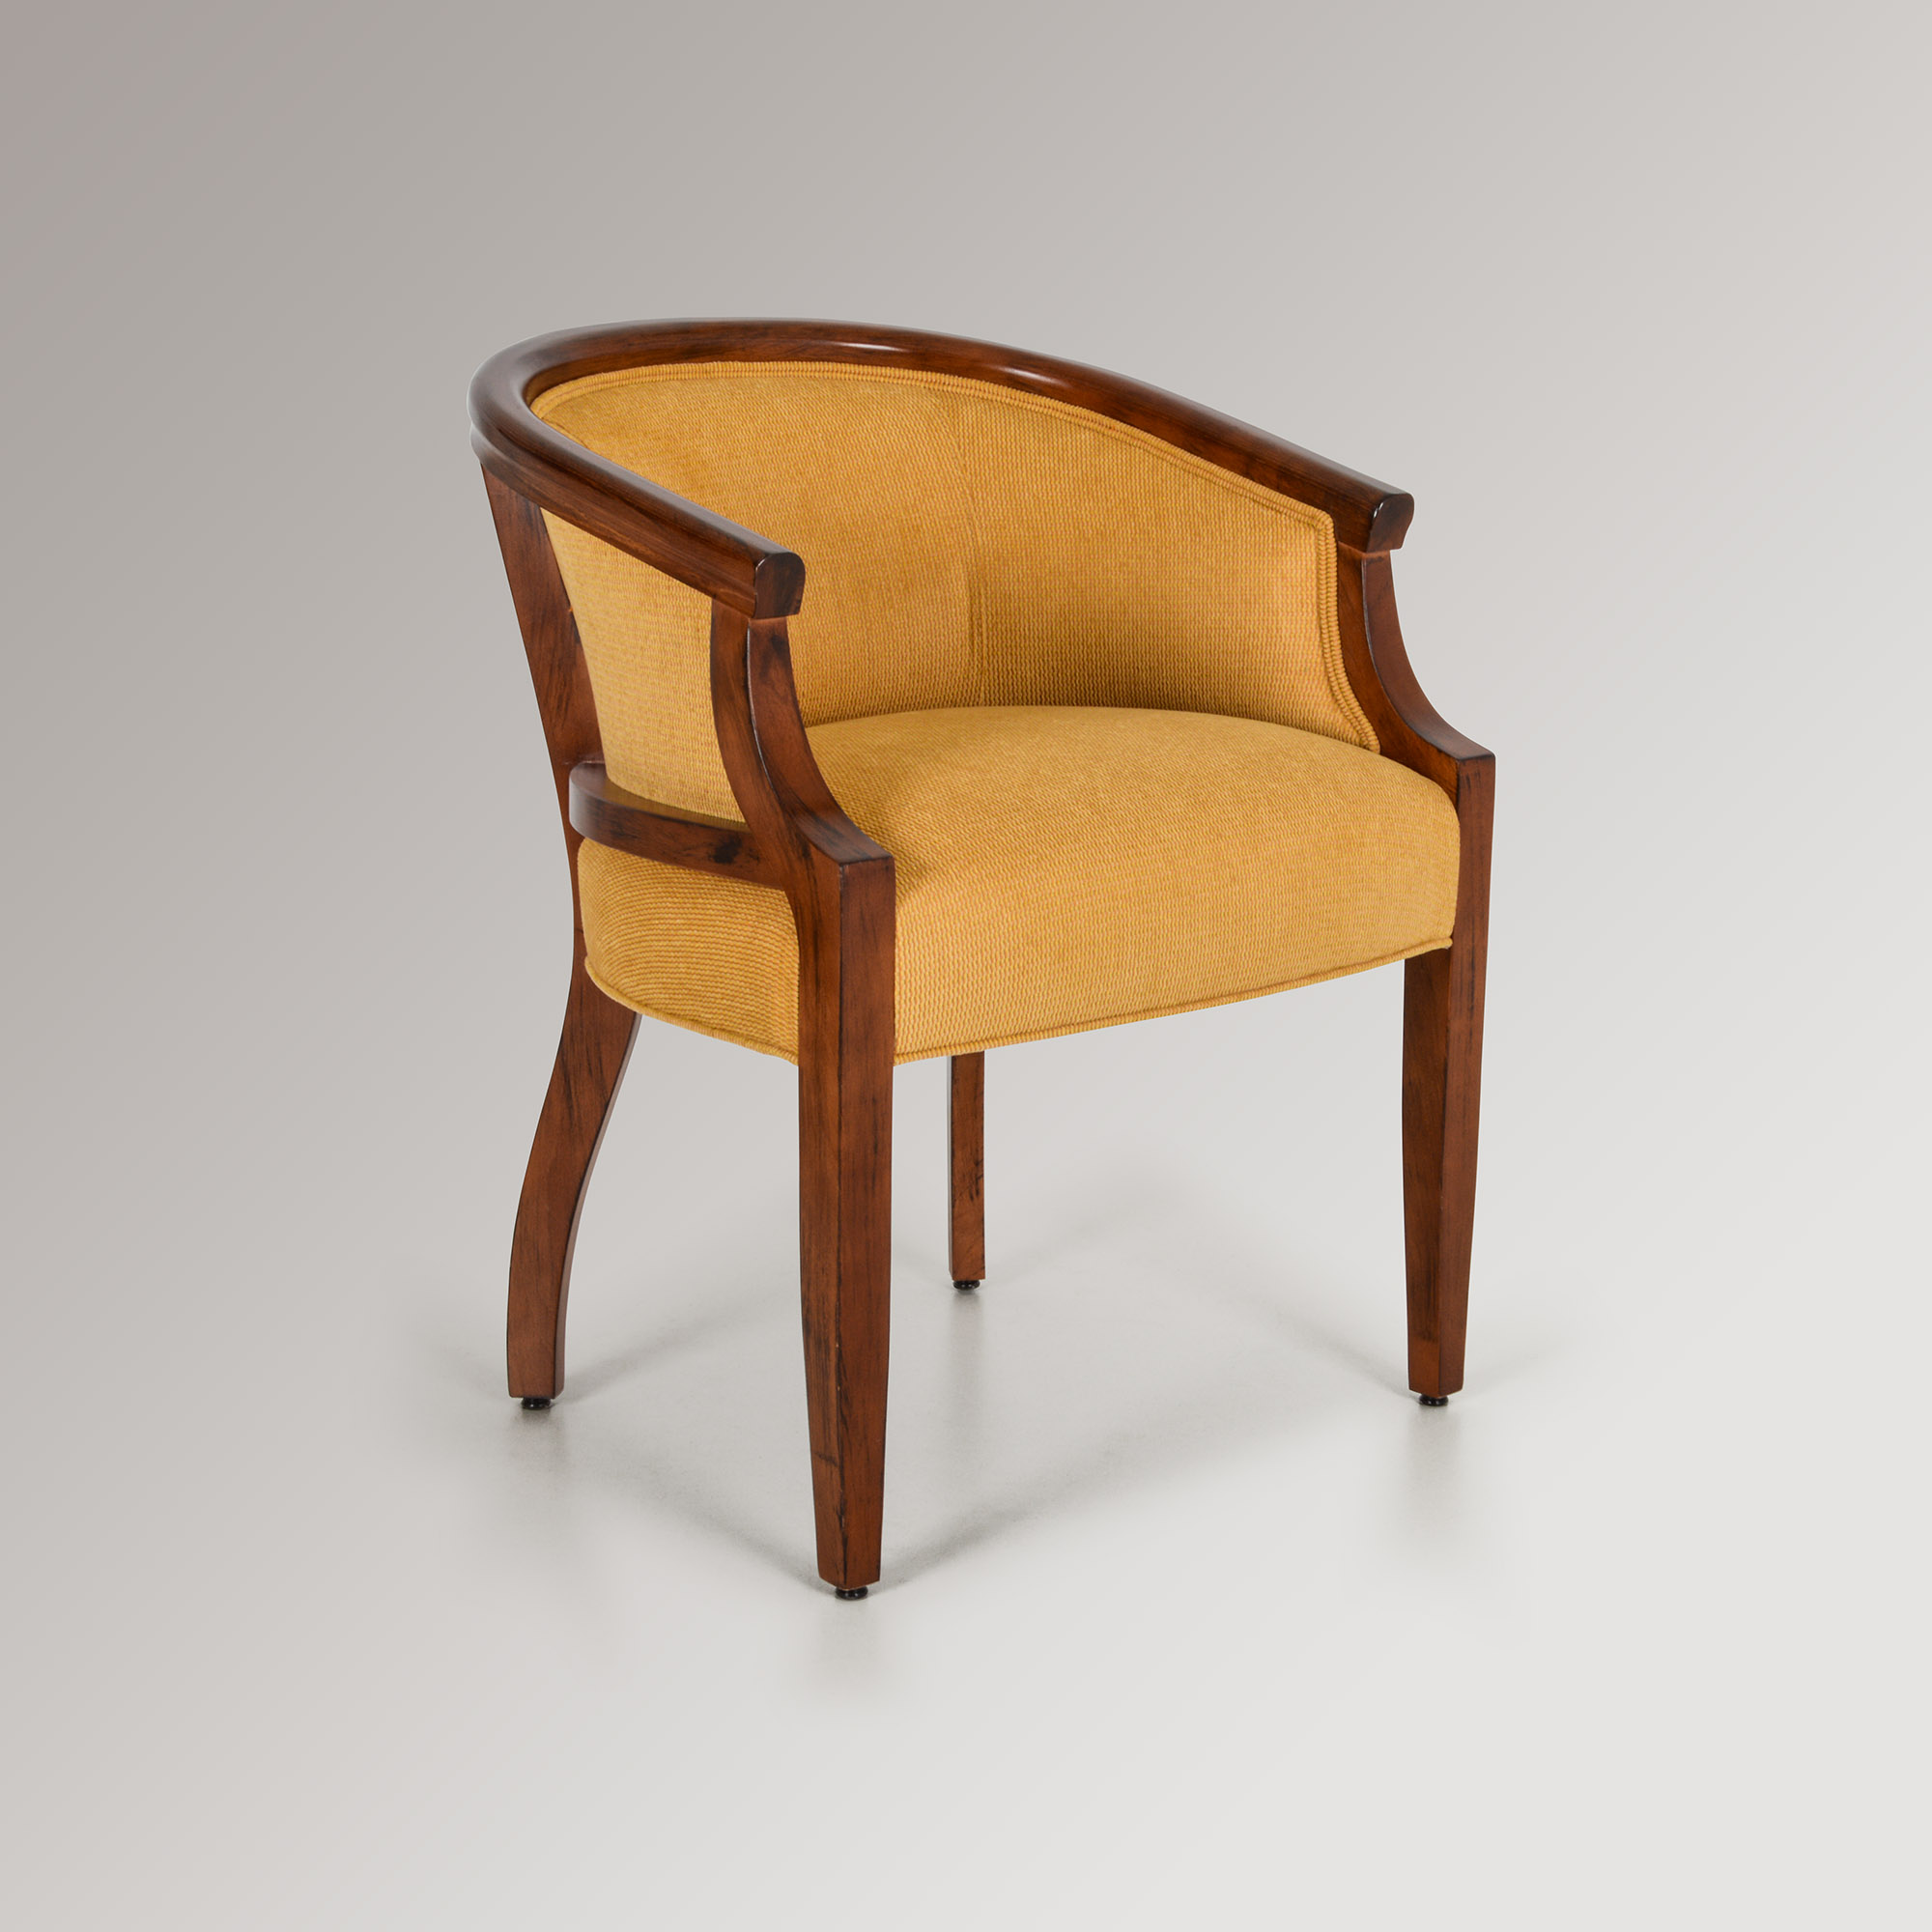 Badin Absolute Style Furniture